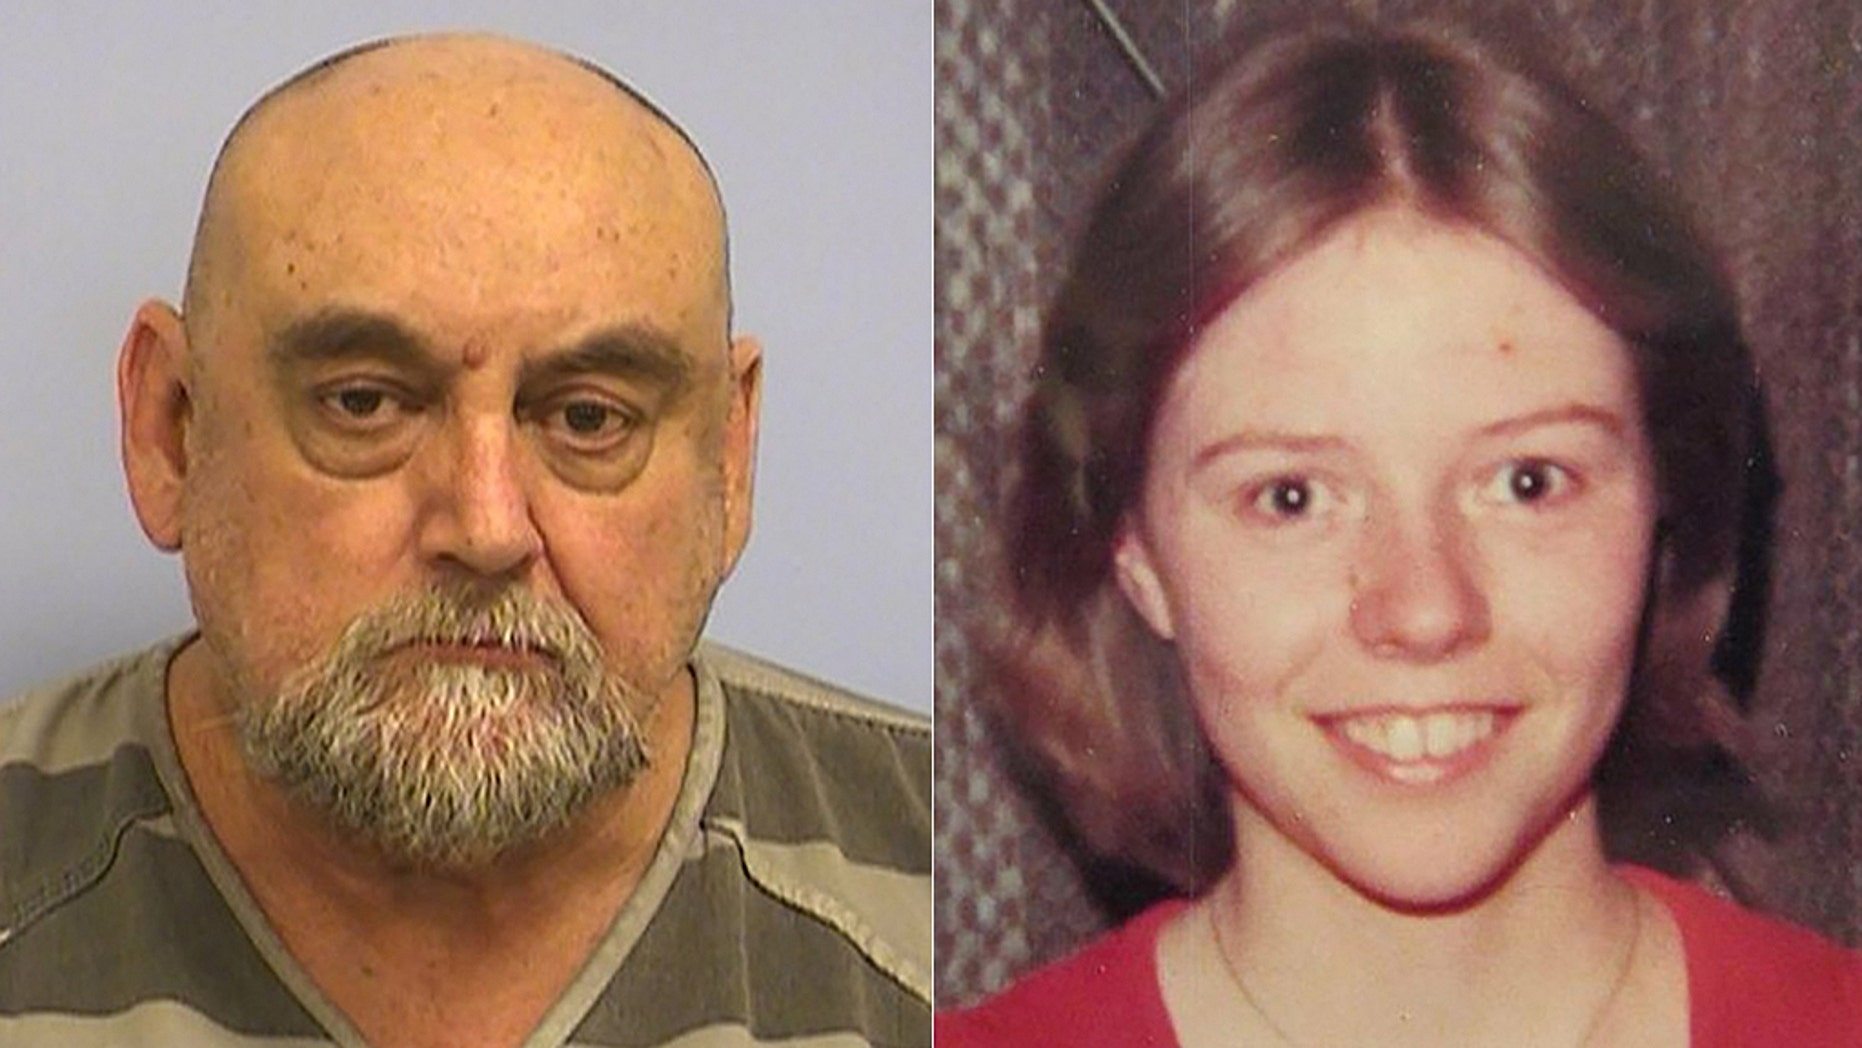 Michael Anthony Galvan has been charged with capital murder in the cold case killing of newlywed Debra Sue Reiding in her Austin, Texas, apartment in 1979